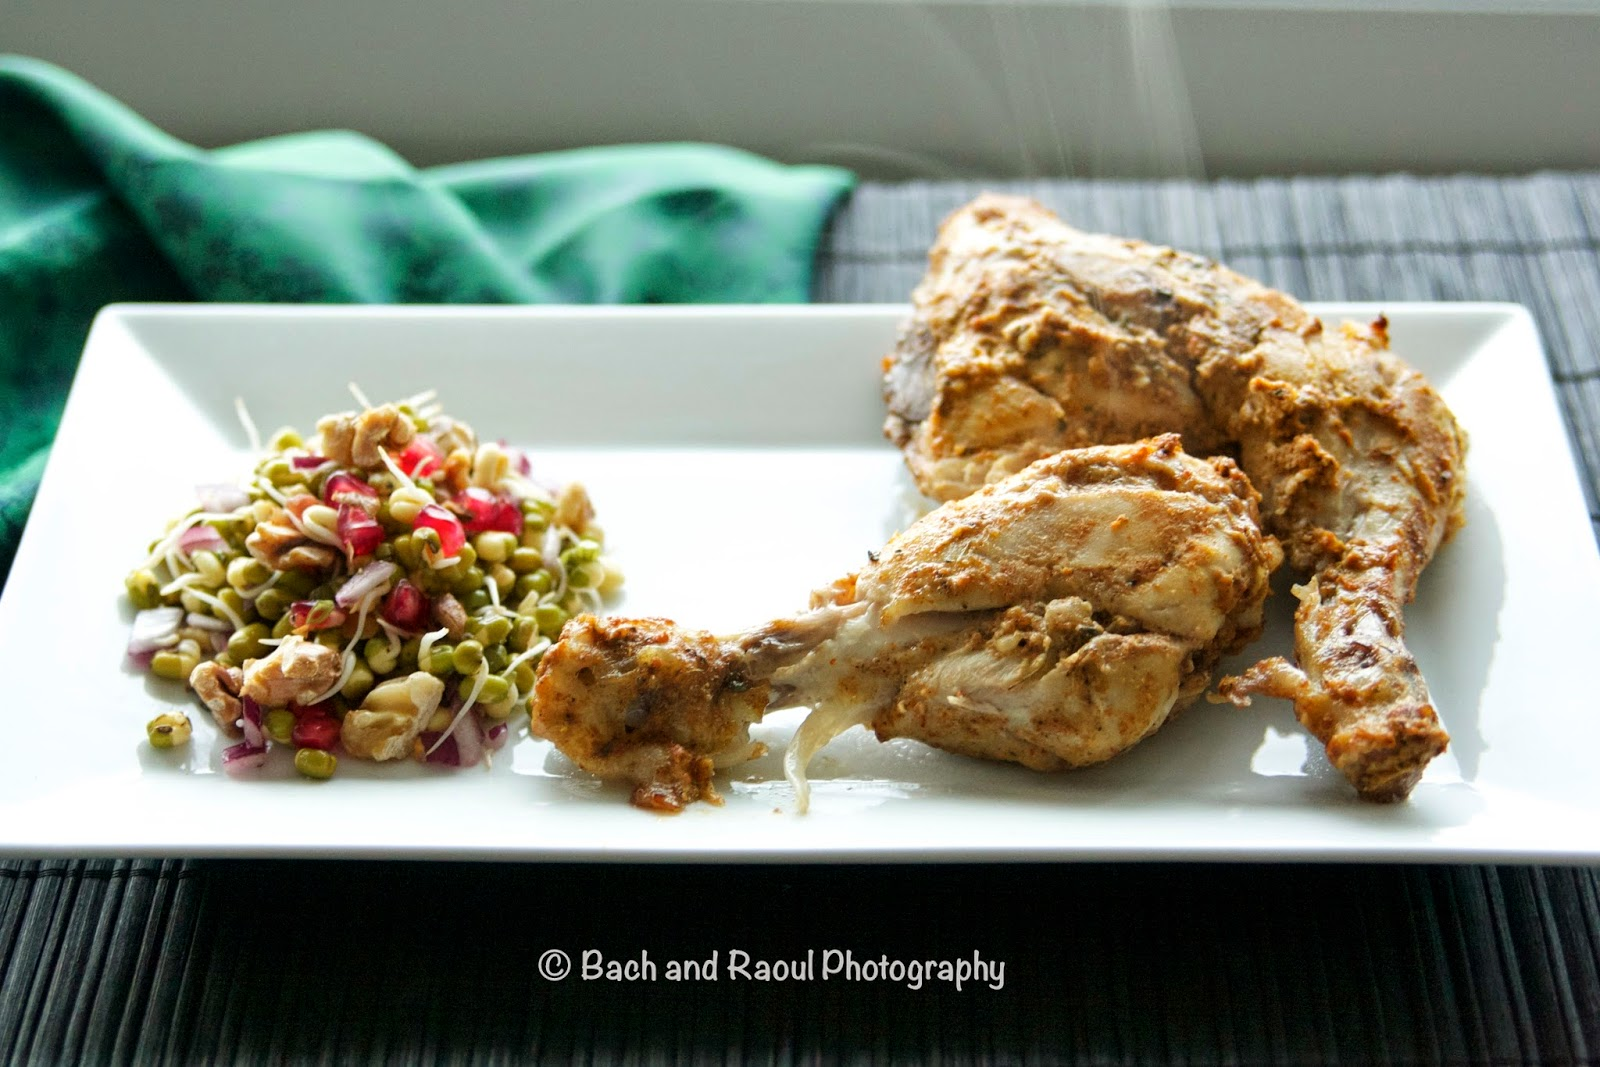 Tandoori Chicken with a side of mung bean sprouts salad with pomegranate seeds and walnuts